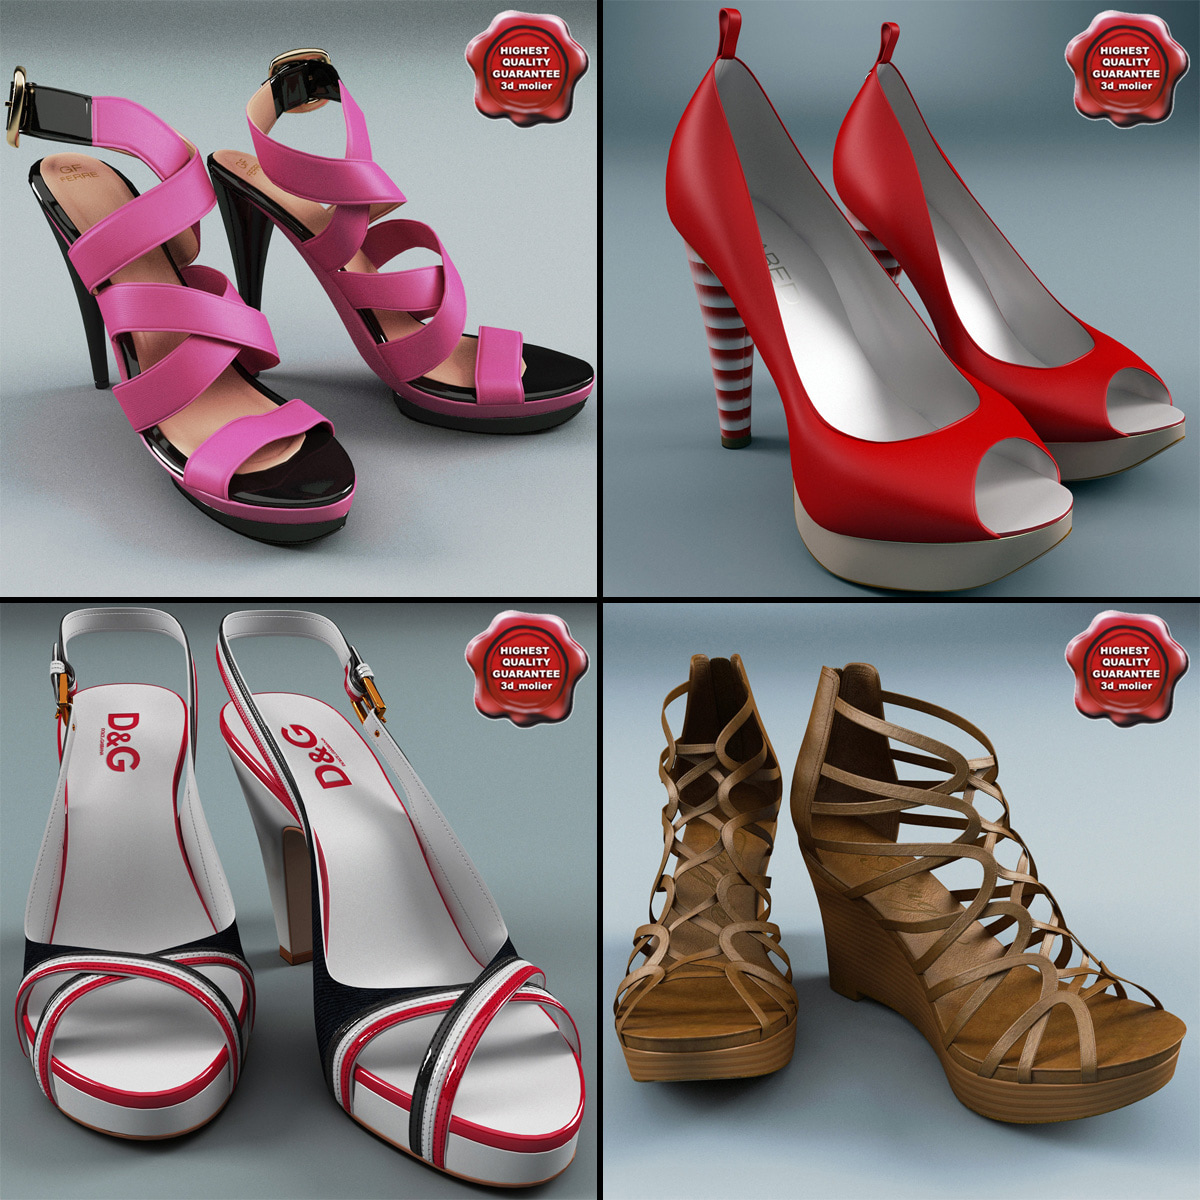 Women_Shoe_Collection_V3_00.jpg